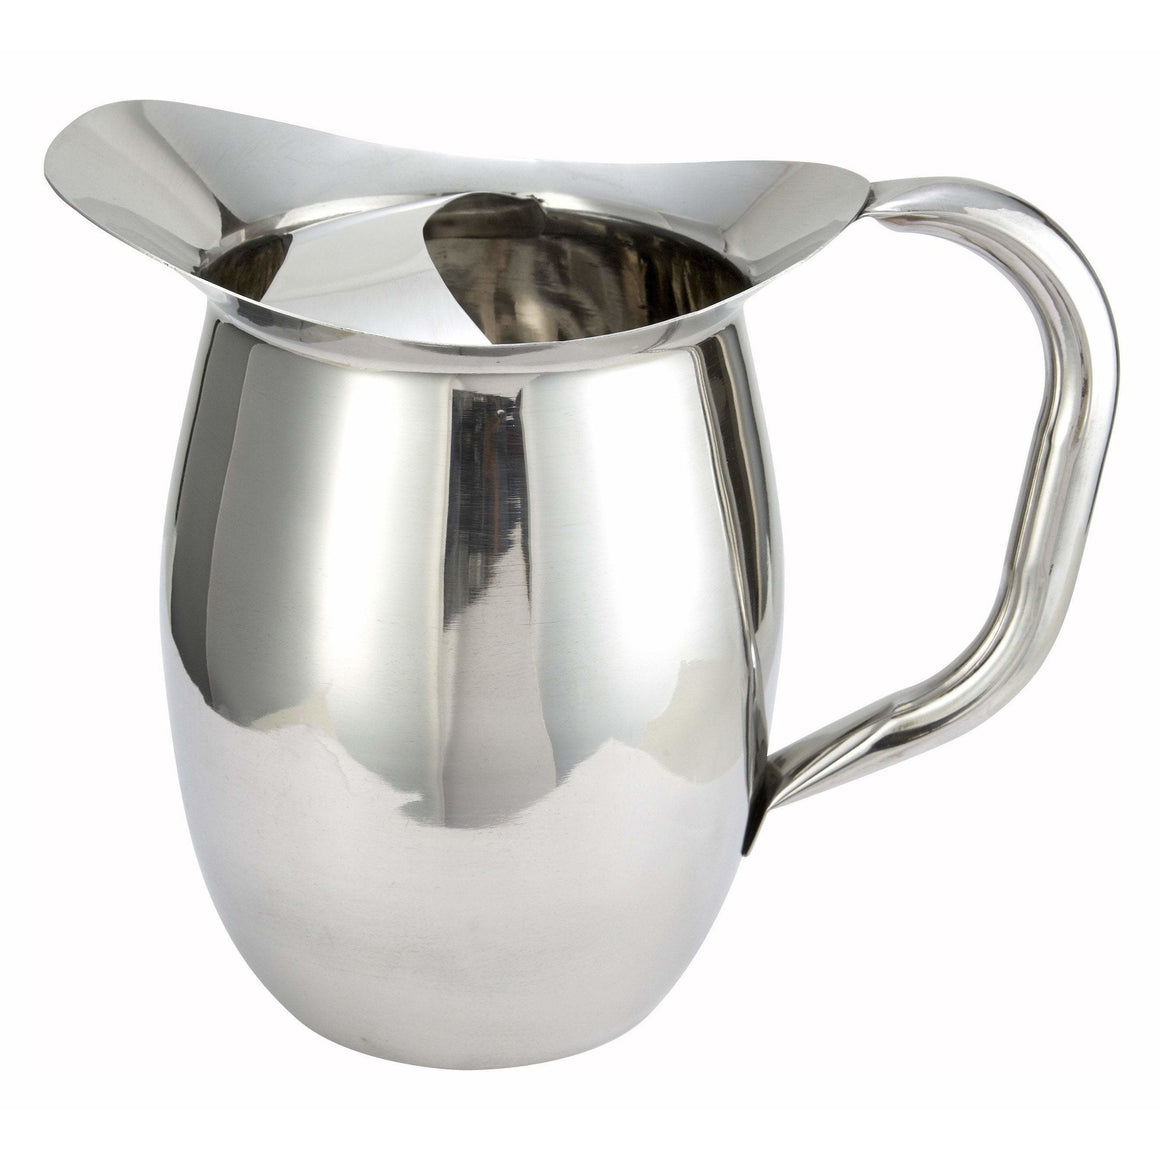 Winco - WPB-3C - 3qt Bell Pitcher w/Ice Catcher, Stainless Steel - Beverage Service